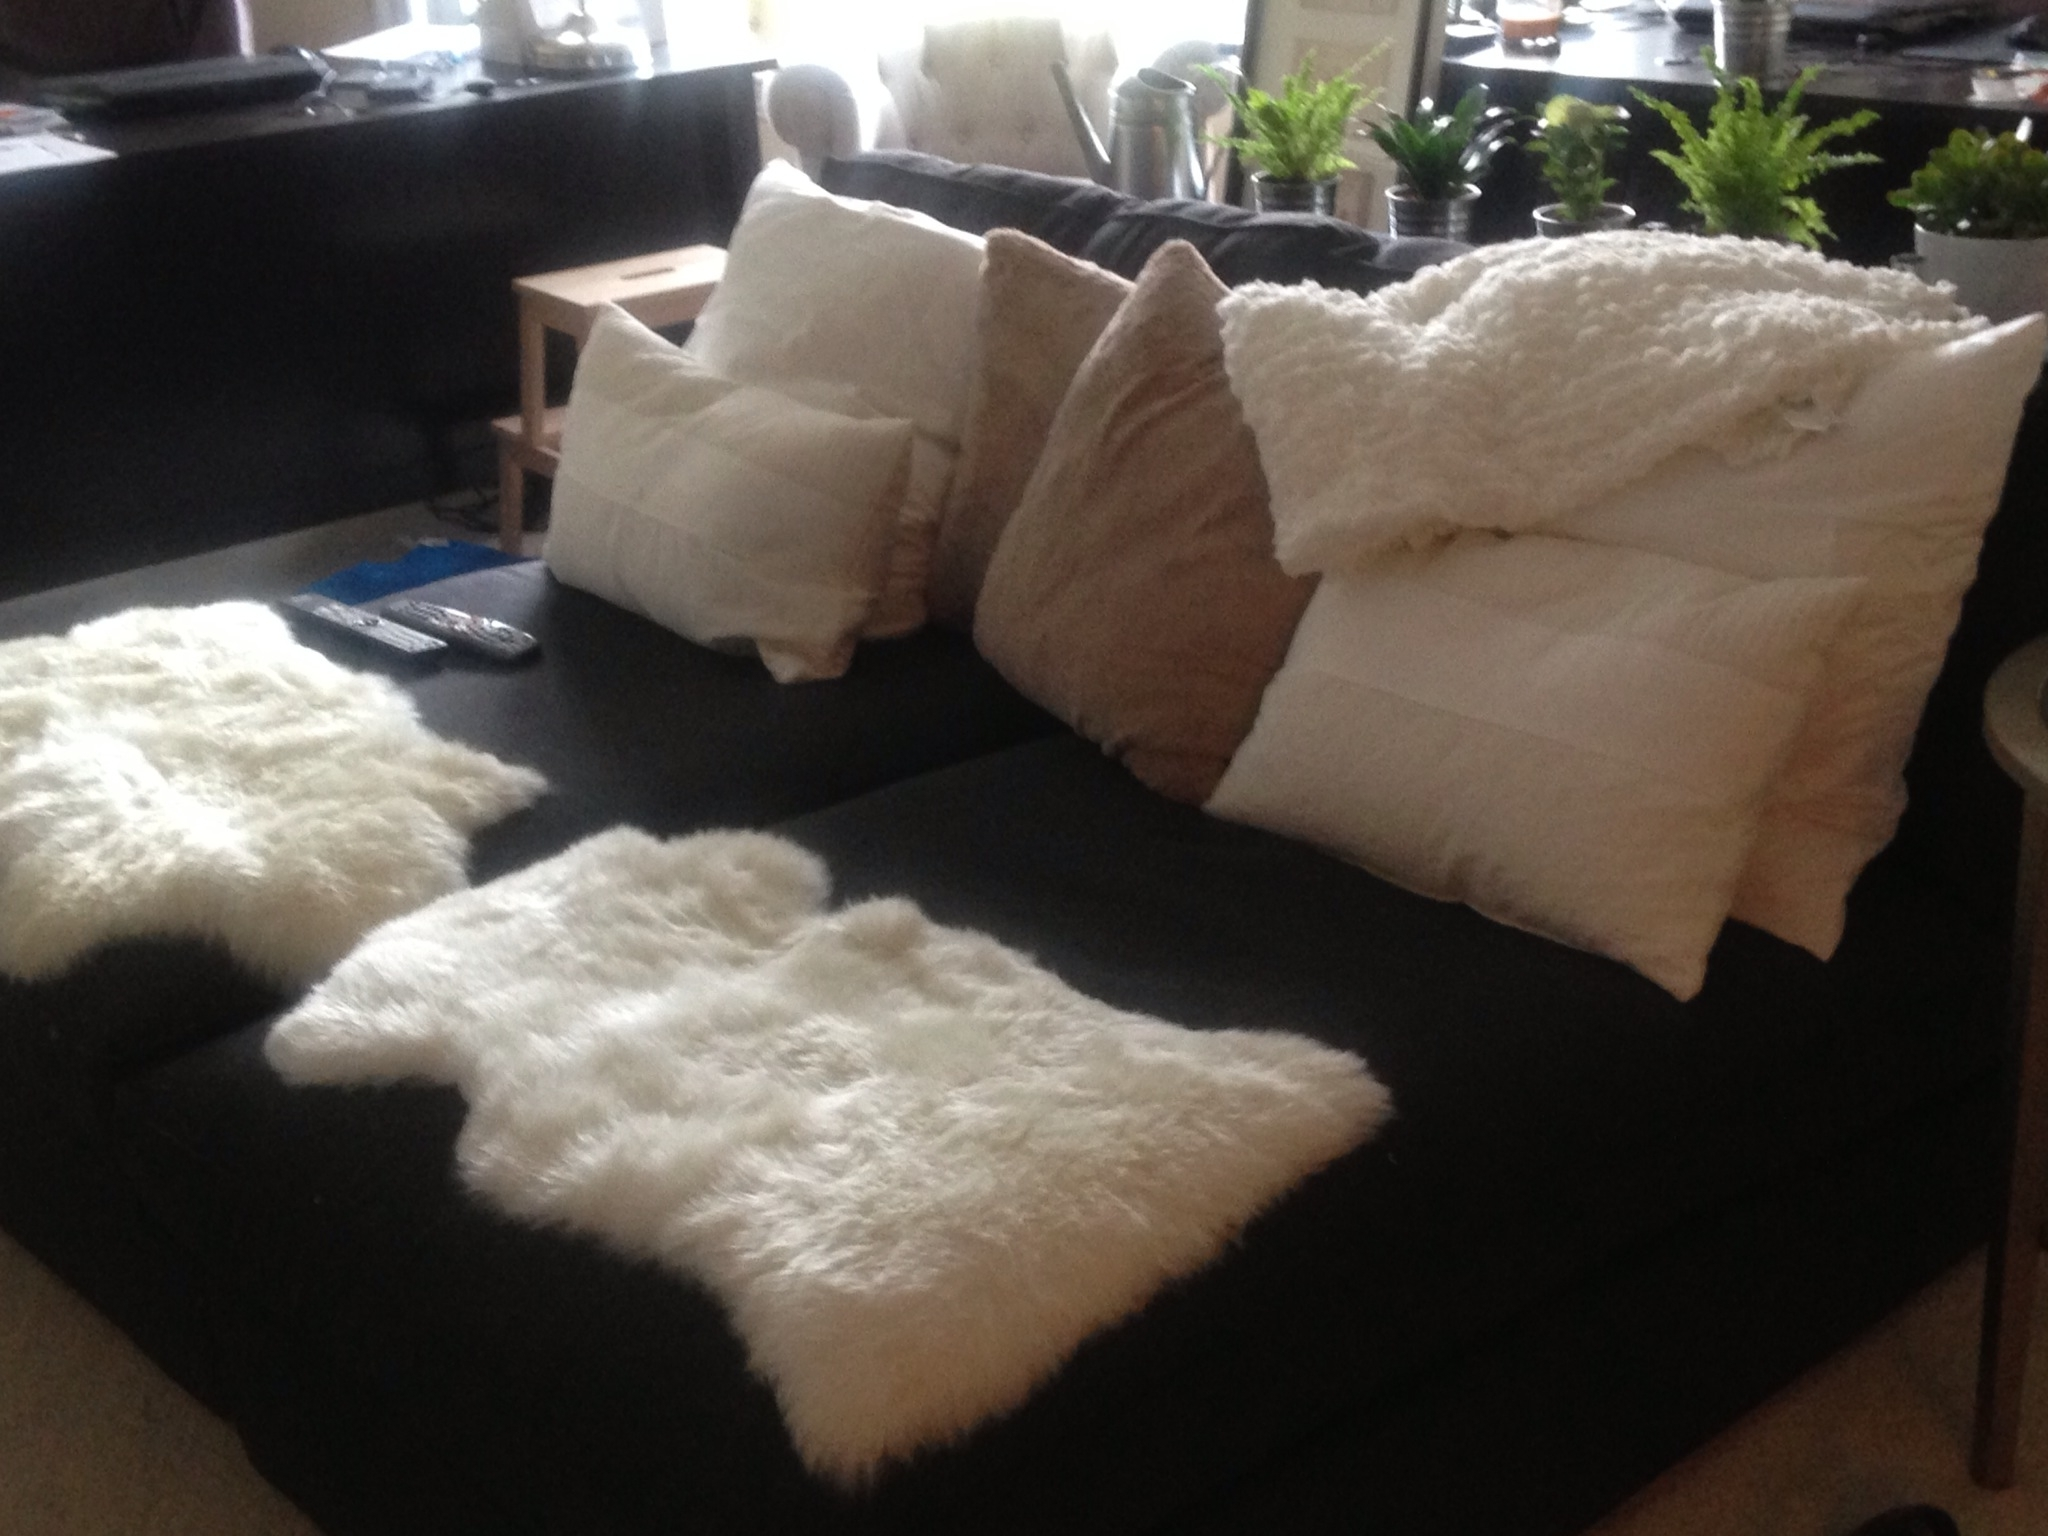 Most Recent Kivik Chaises Pertaining To 2 Kivik Chaises From Ikea + Lots Of Soft Fluffy Things = Tv (View 8 of 15)